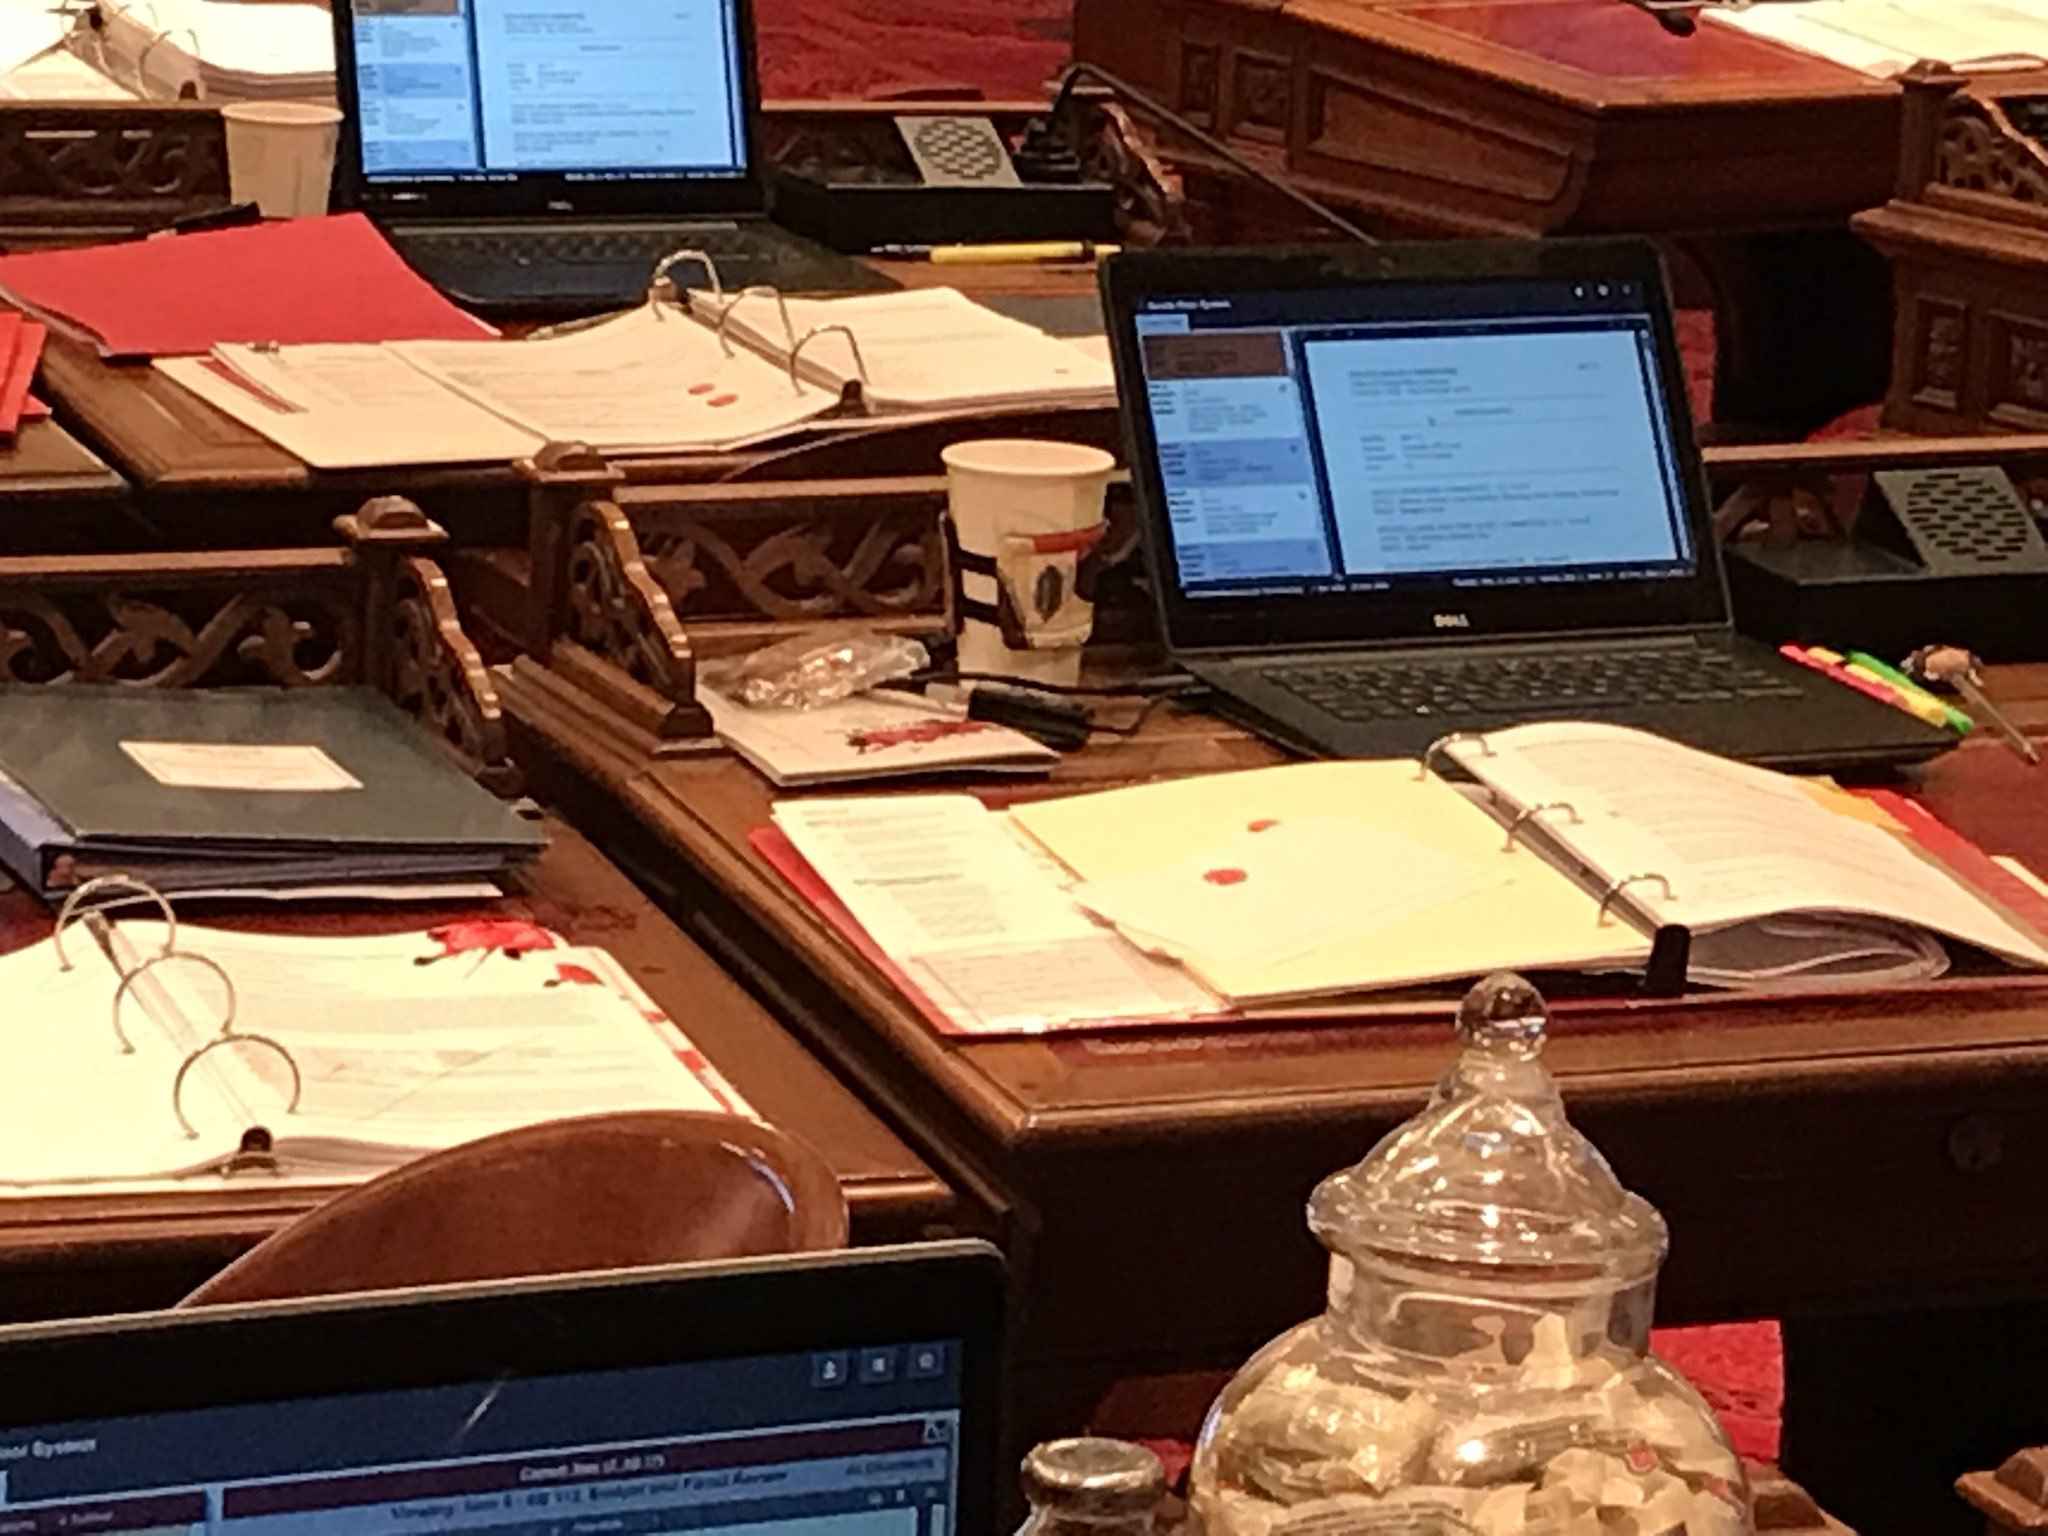 A picture of Senators' desks splattered with blood.